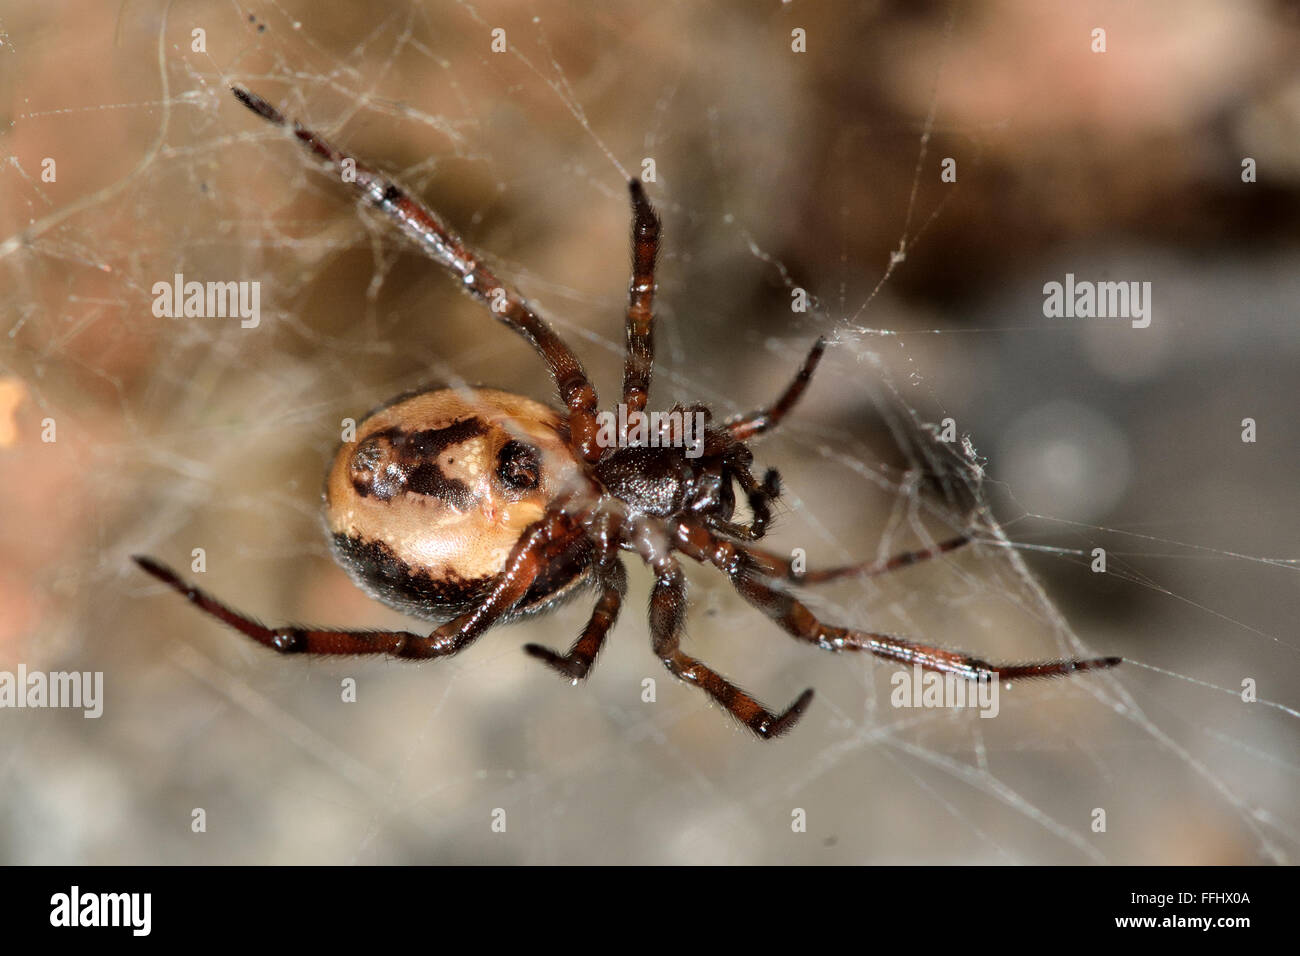 Steatoda bipunctata female showing epigyne. A female spider in the family Theridiidae, showing female reproductive - Stock Image